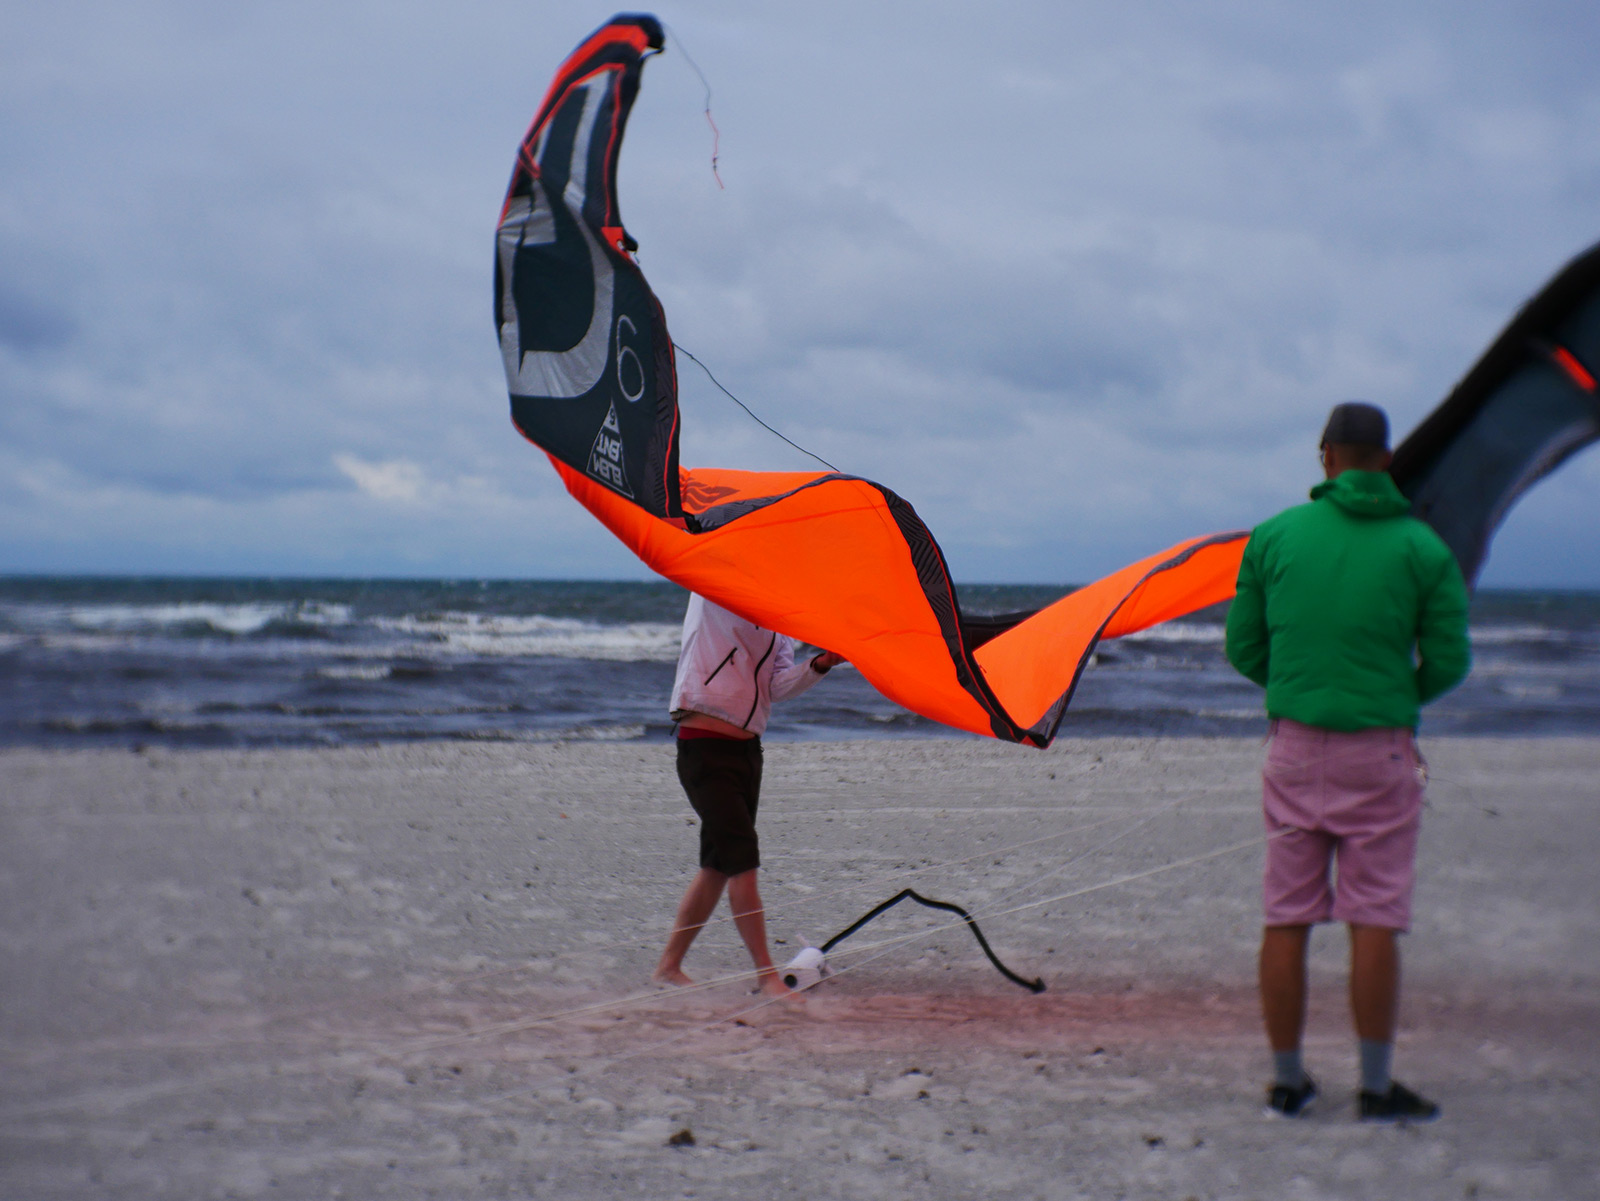 Setting up a kite at a grey Skanor.